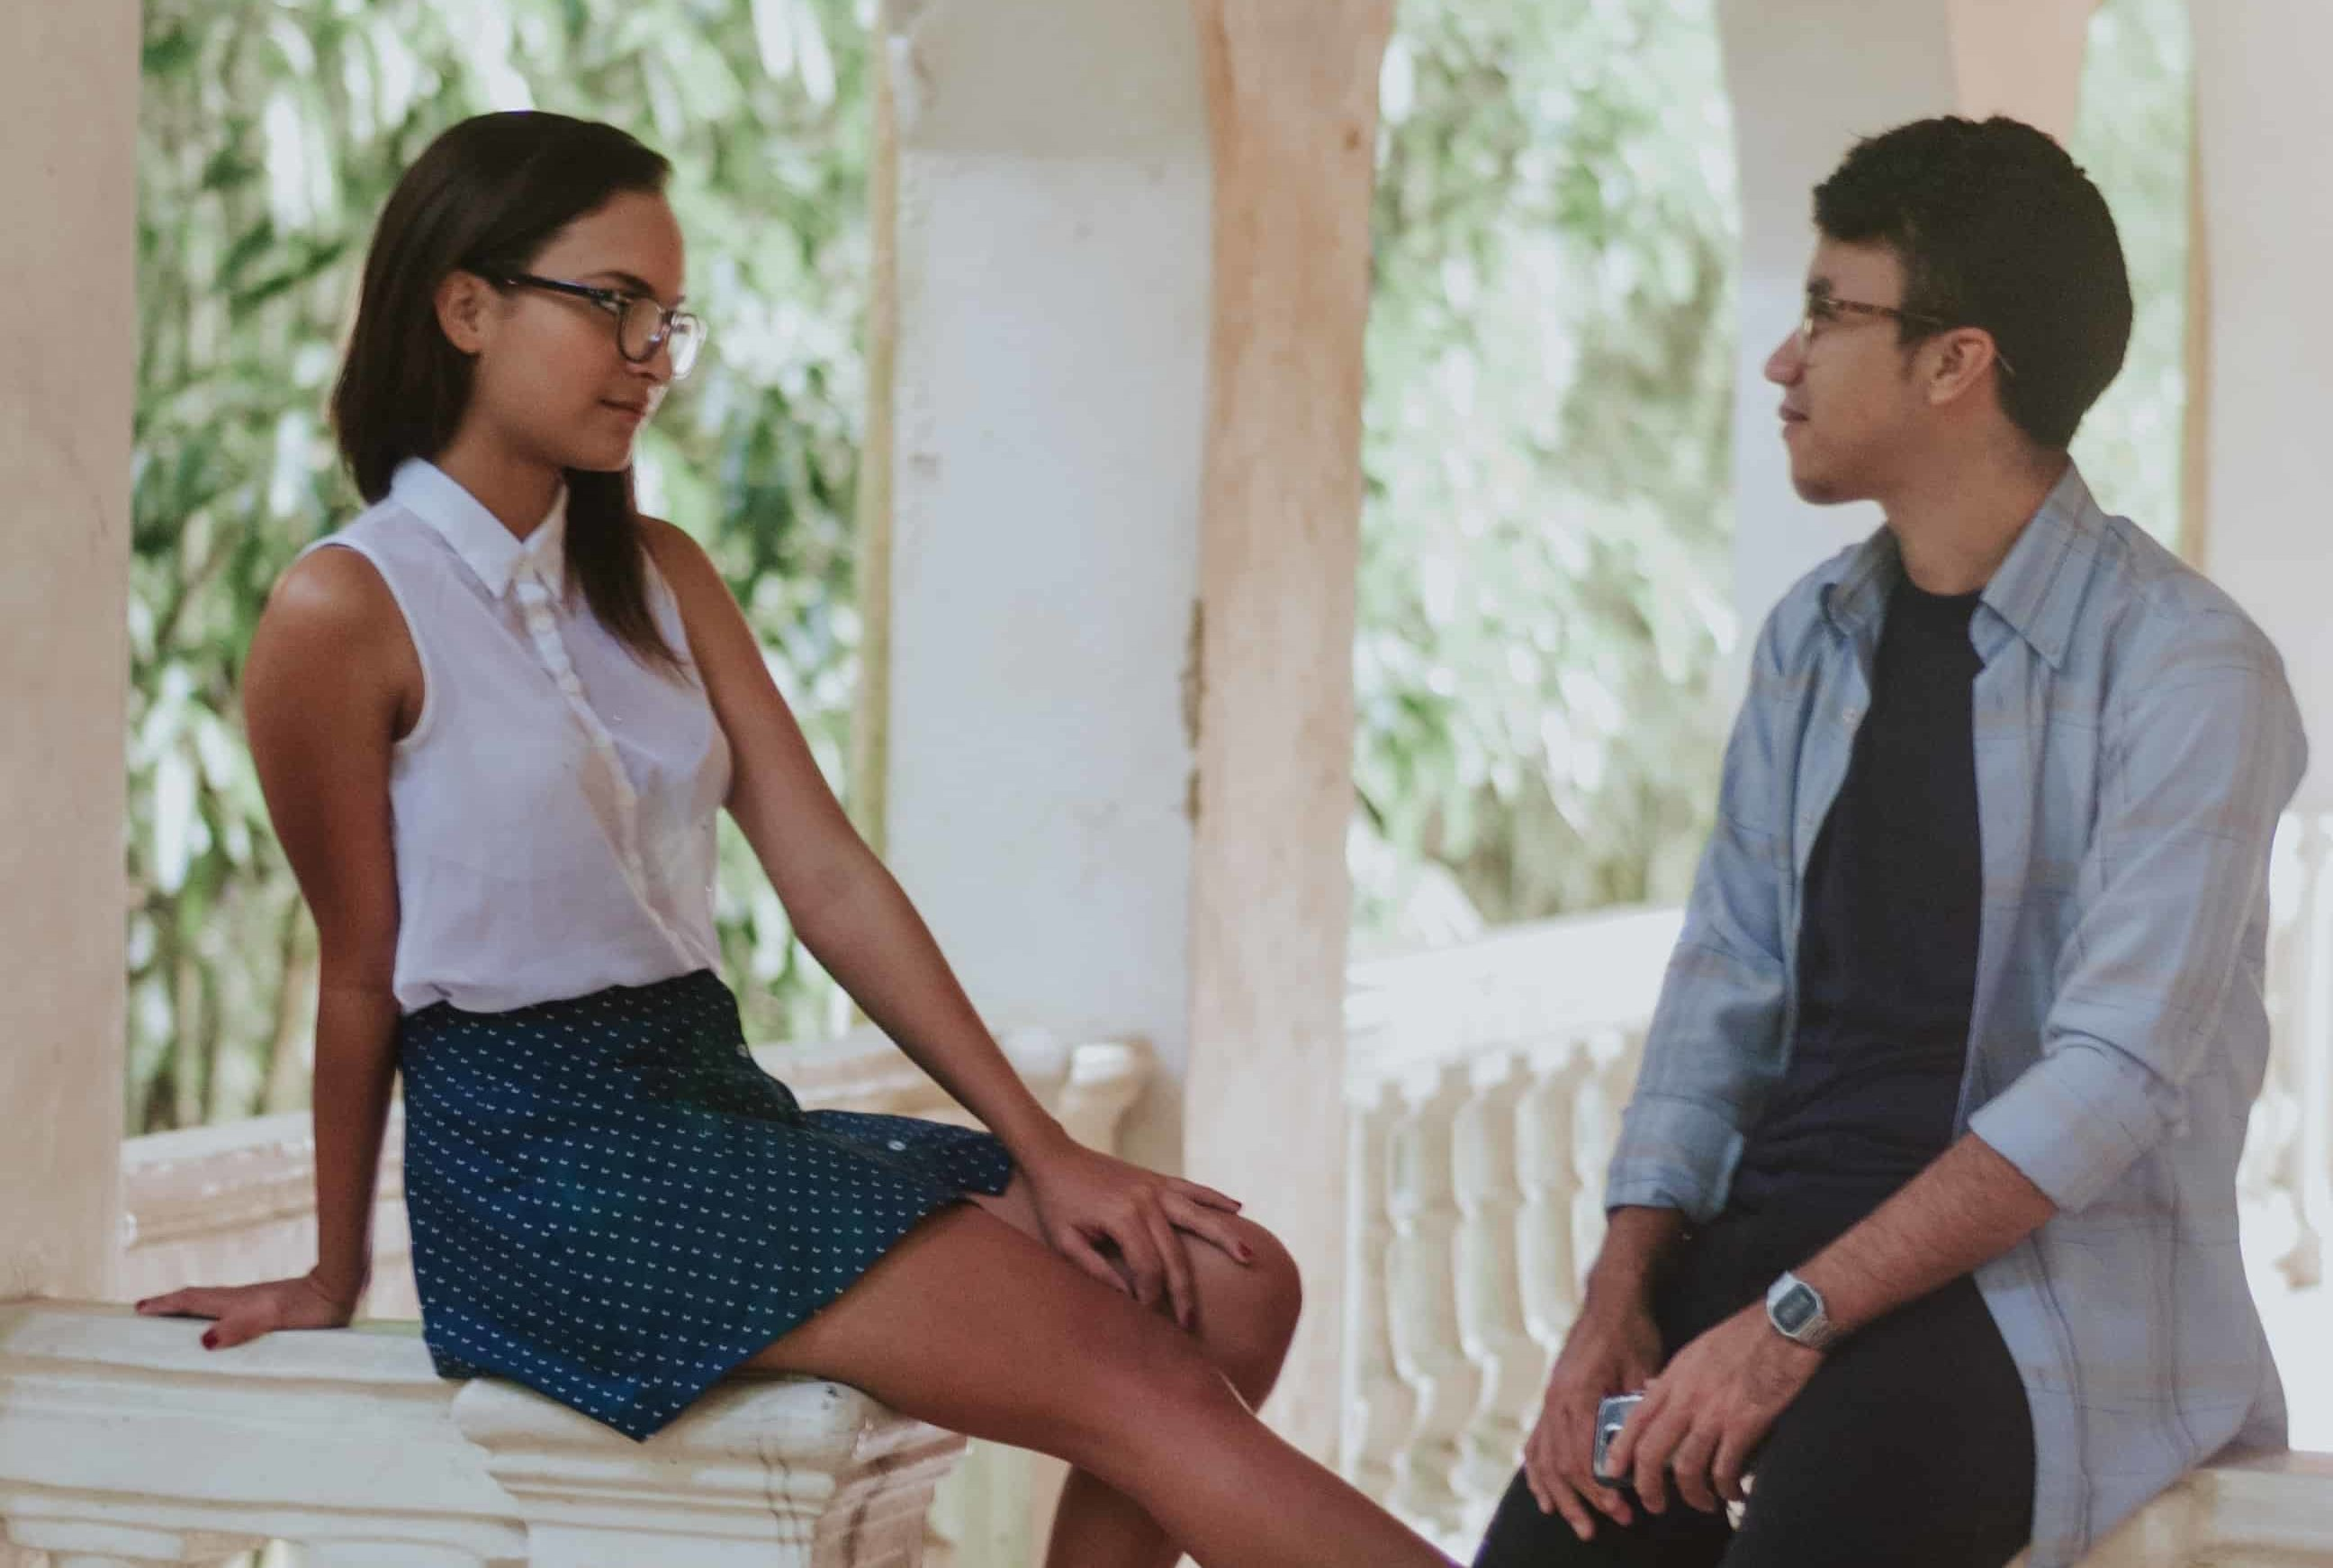 8 Reasons Why No Girl Wants To Date You